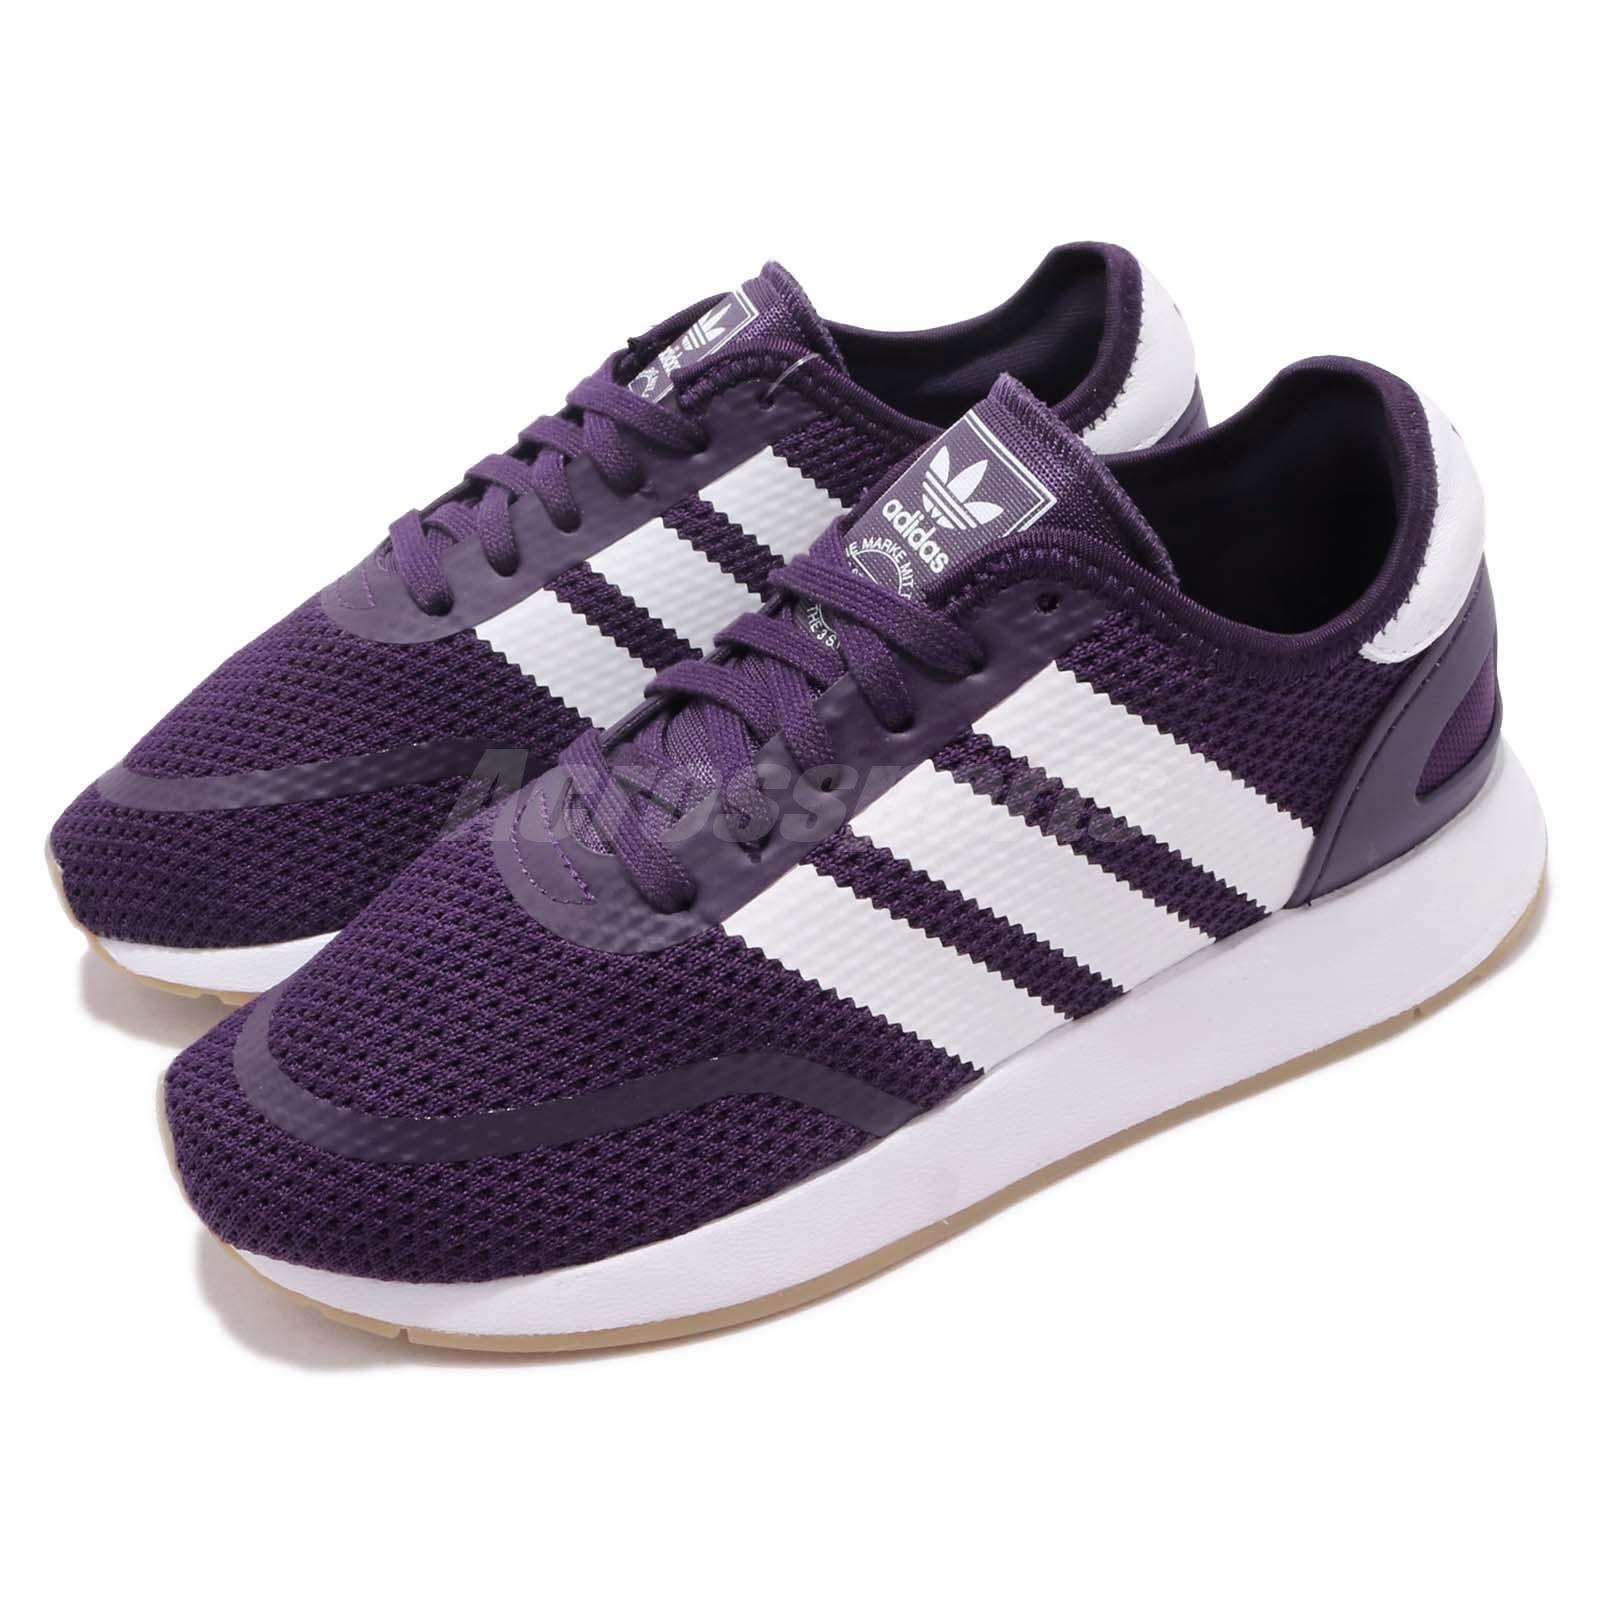 0d6fd431358 Details about adidas Originals N-5923 W Iniki Runner Purple Gum Women  Running Shoes BD8041